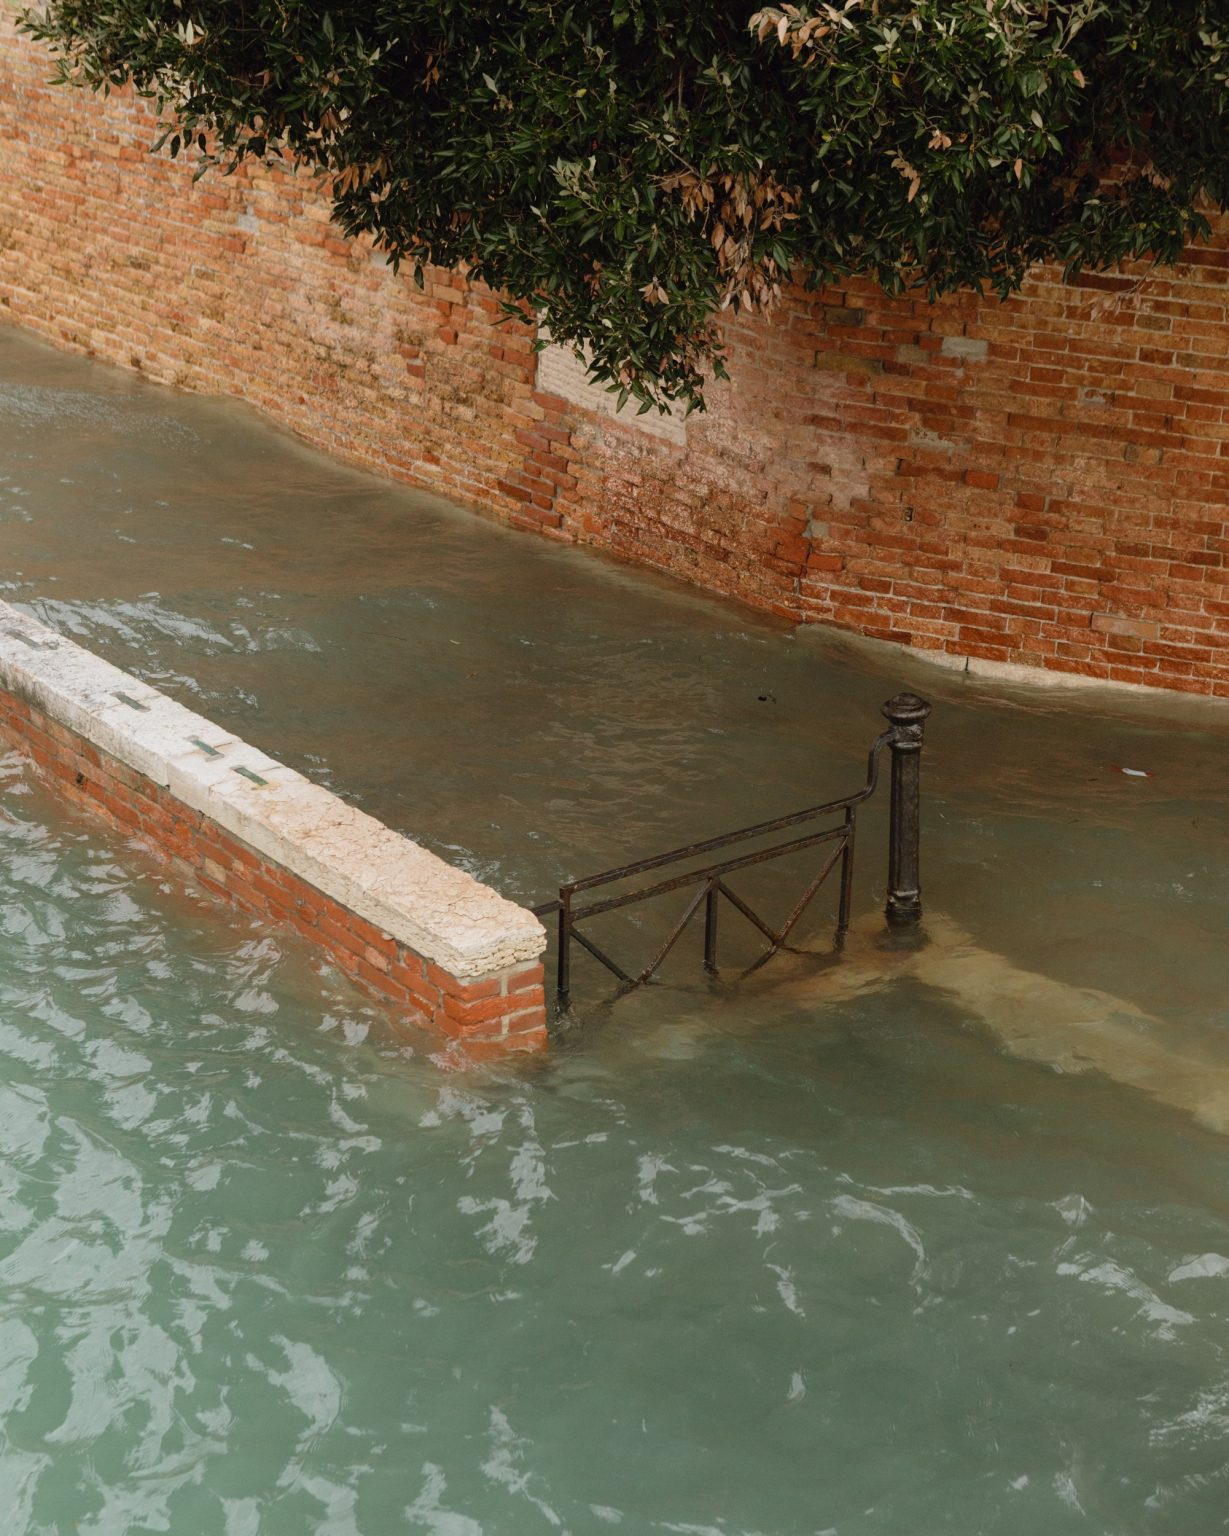 The water of Giudecca Canal invading the Fondamenta Zattere. Exceptional acqua alta, or high water, in Venice, where the tide went up to 187cm, the highest level since the 1966 flood. Brugnaro, the mayor declared a state of disaster. Venice, Italy, 2019